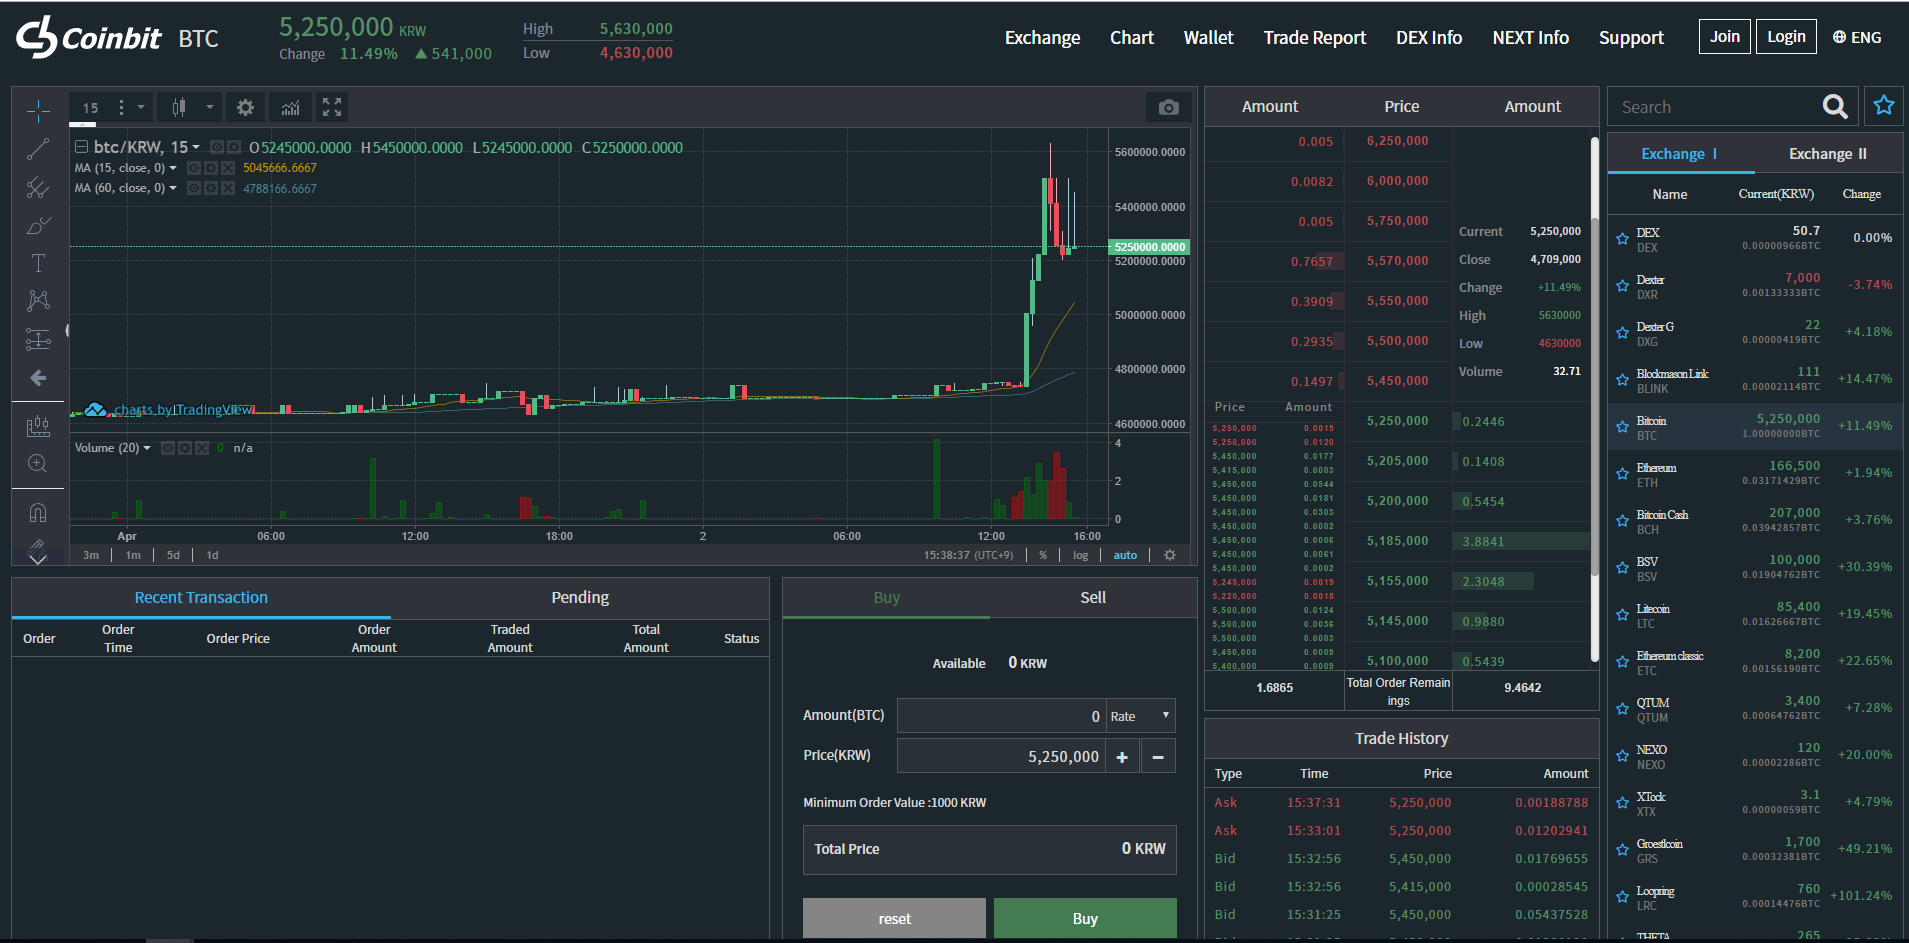 Coinbit Trading View